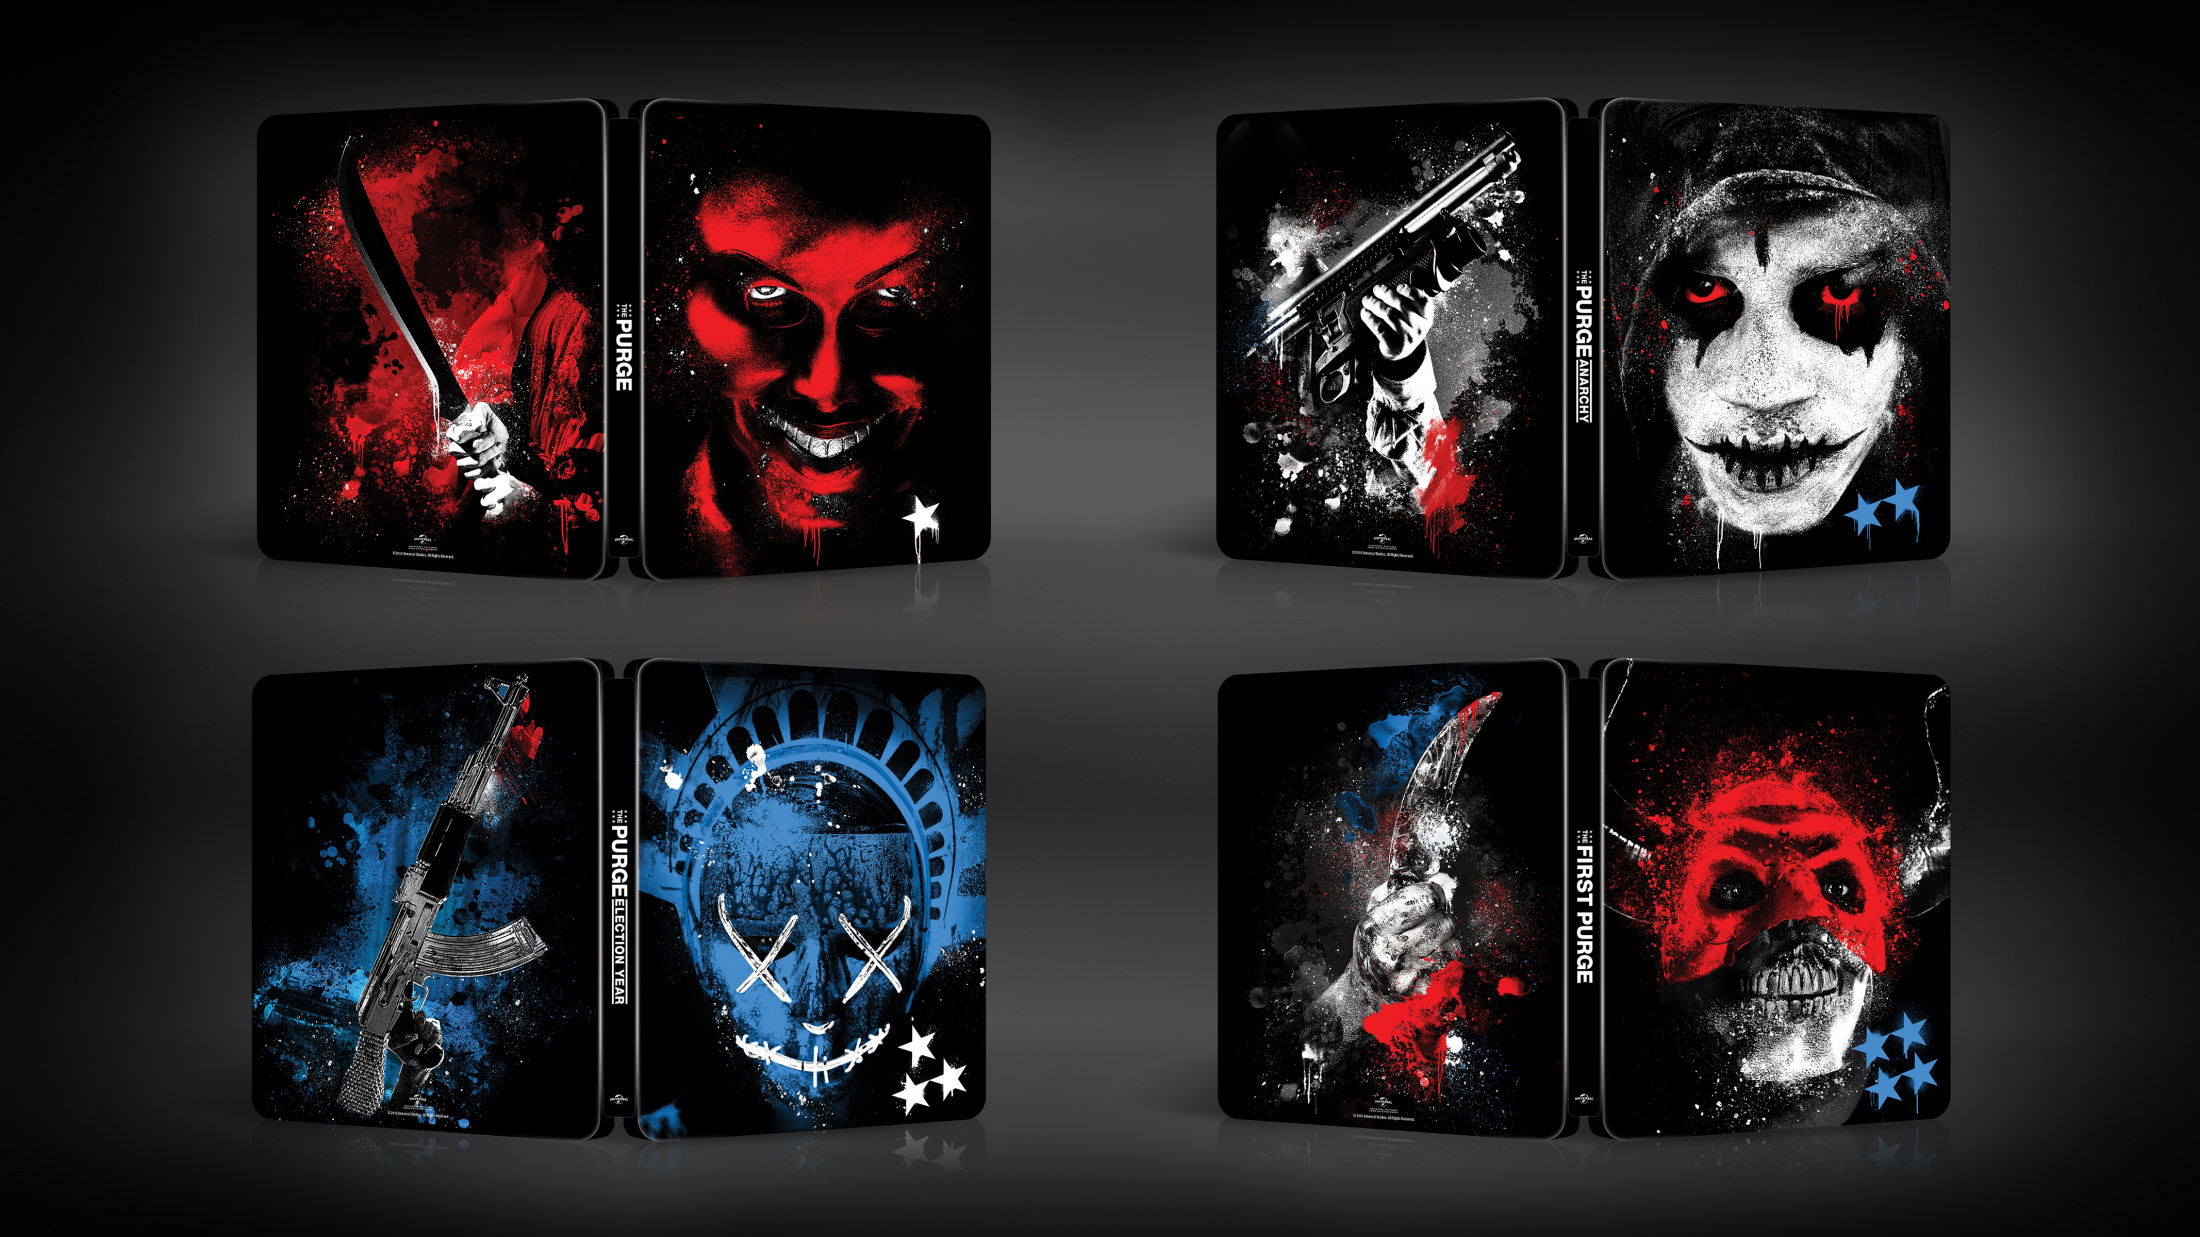 Thumbnail for The Purge Franchise Steelbooks